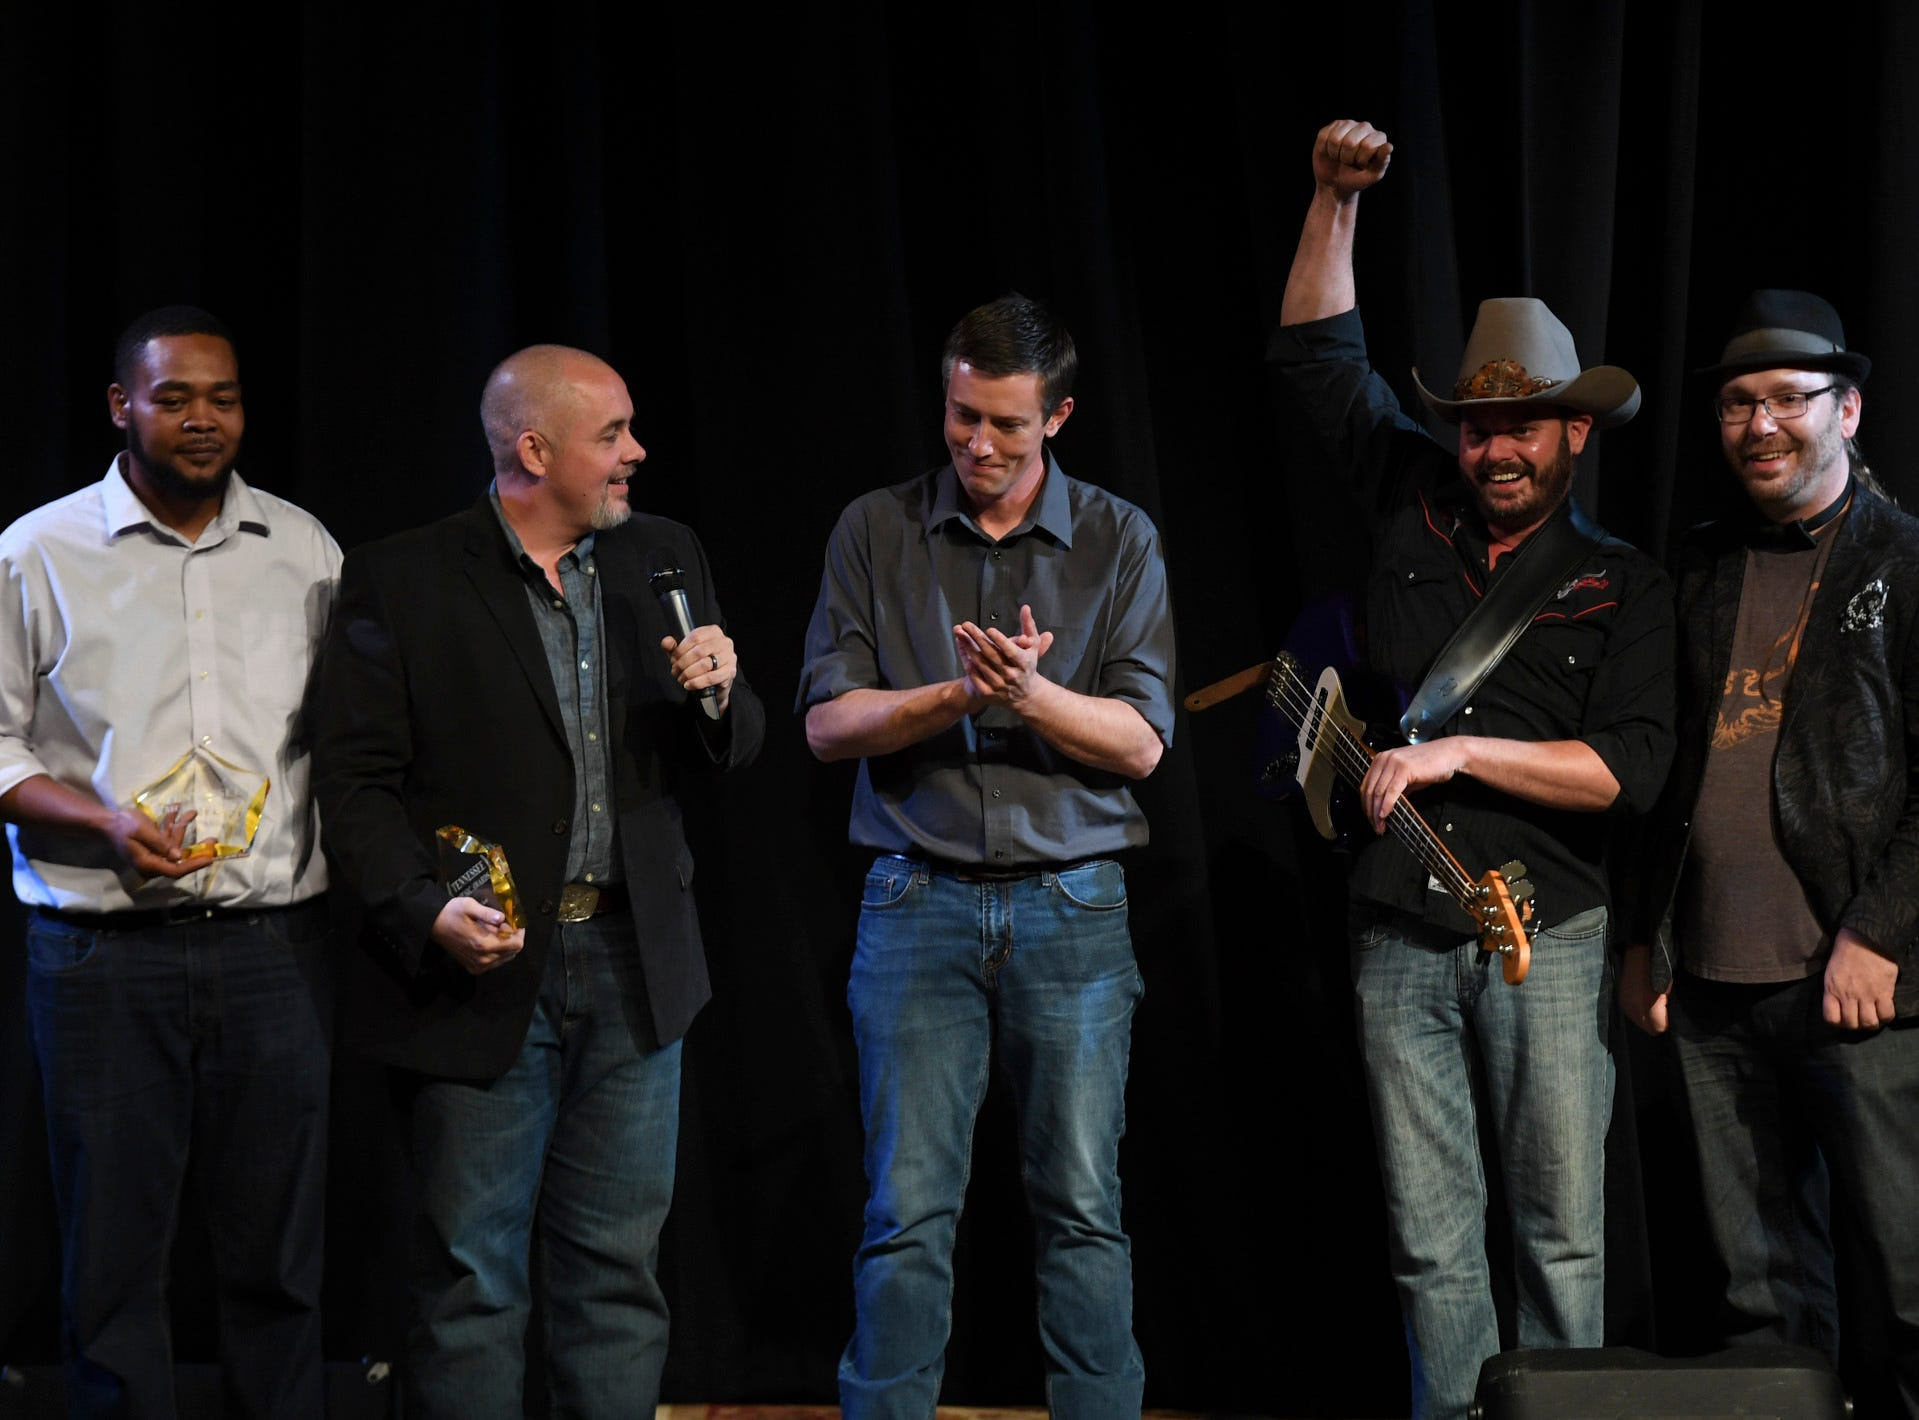 Rev. Jessie and the Holy Smokes received the award for Country Artist of the Year at the 2nd Annual Tennessee Music Awards, Monday, October 8, at University of Memphis Lambuth.